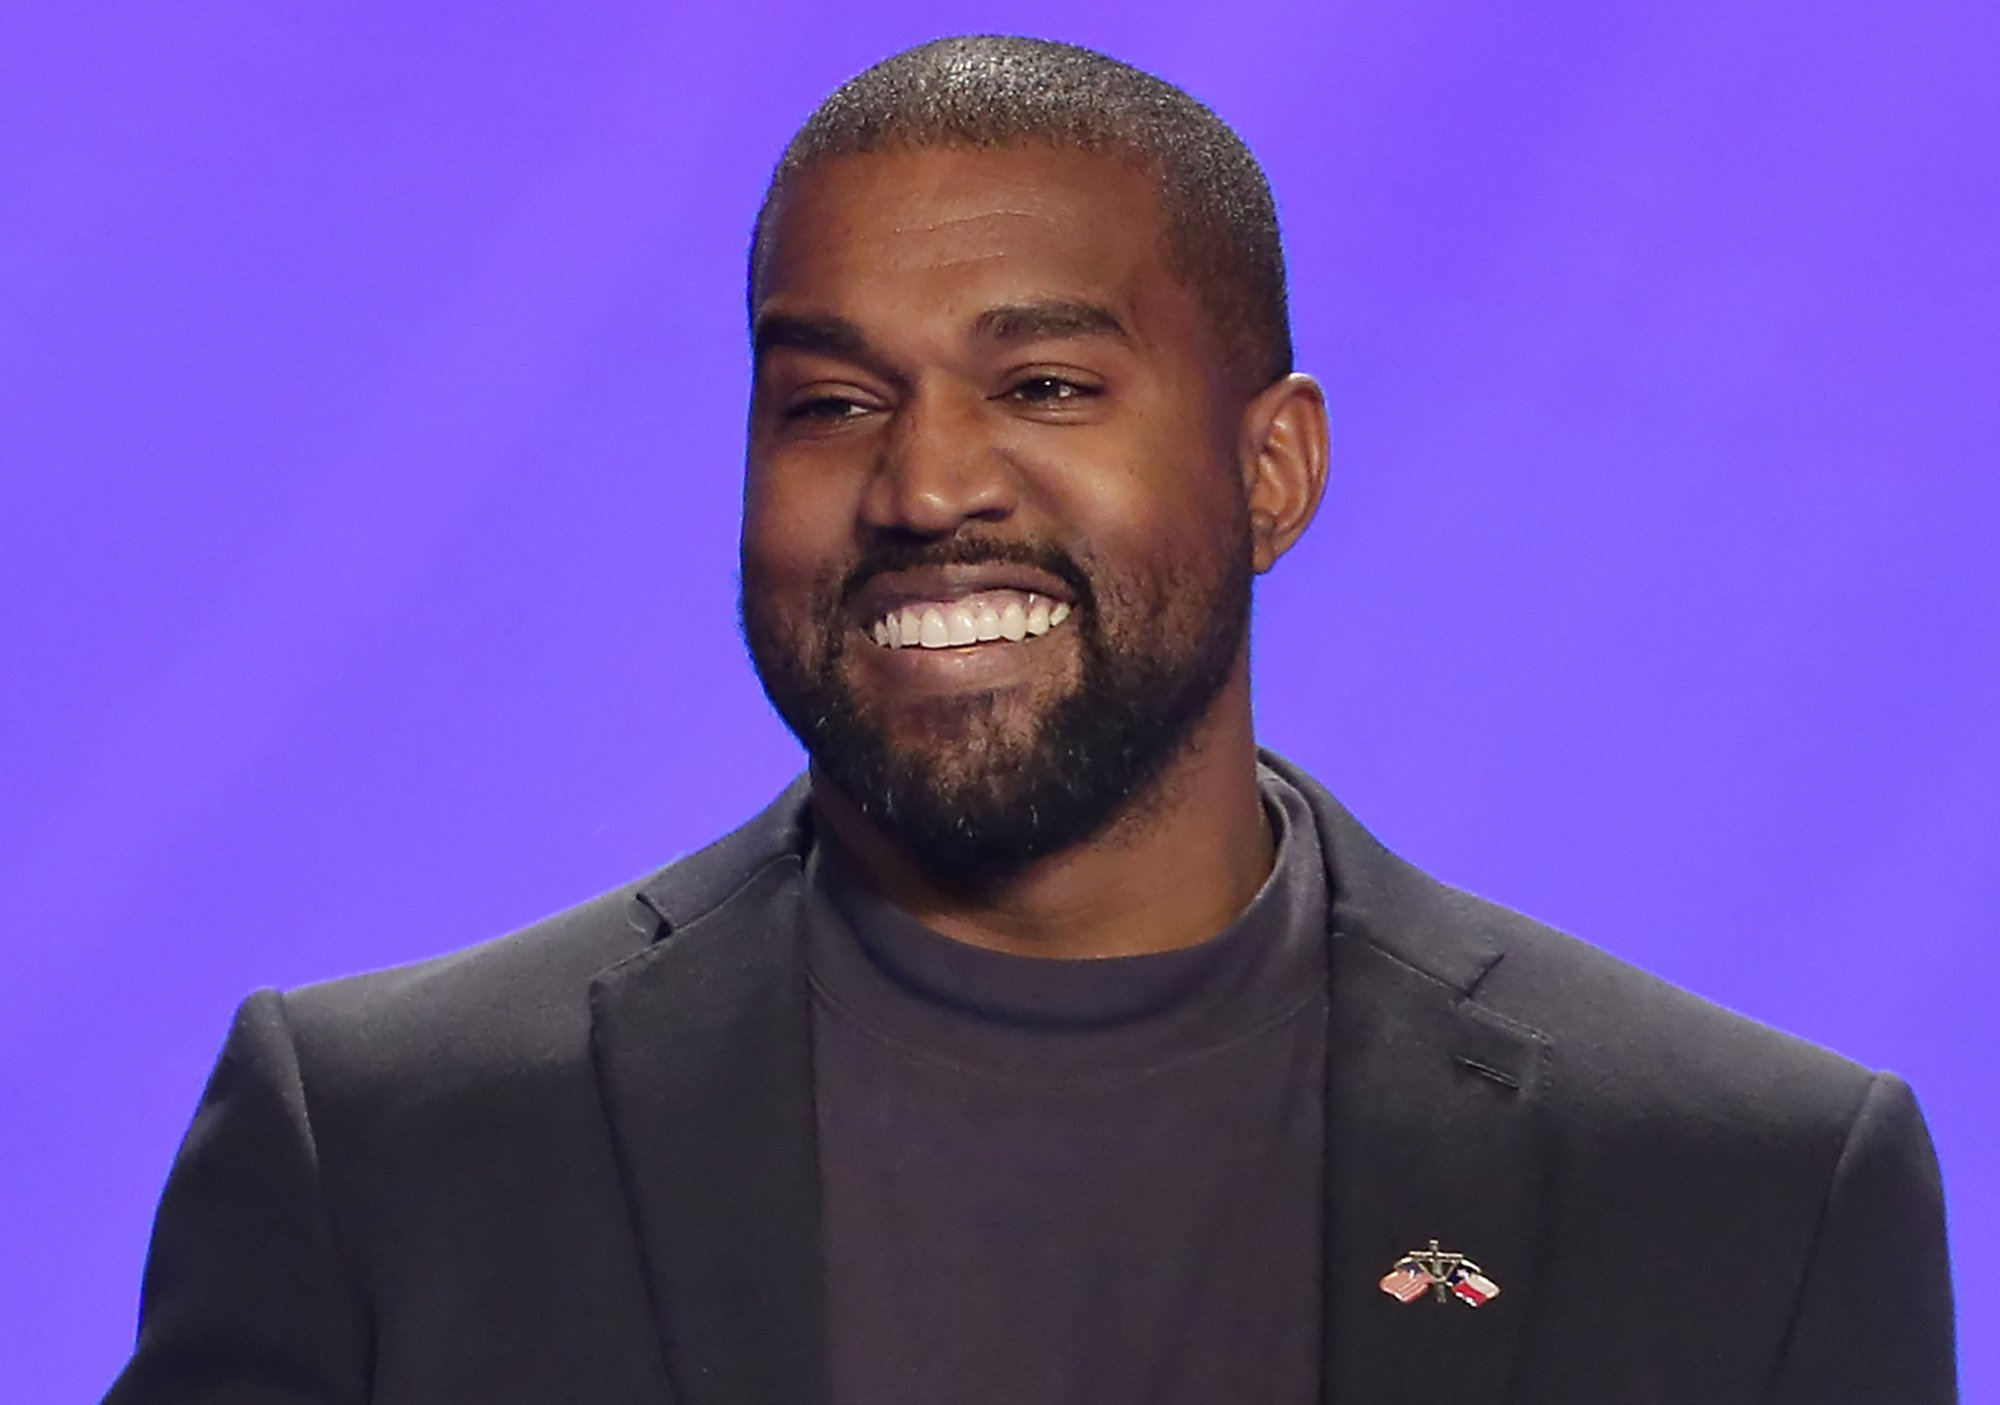 Kanye West Biography, Net Worth 2020